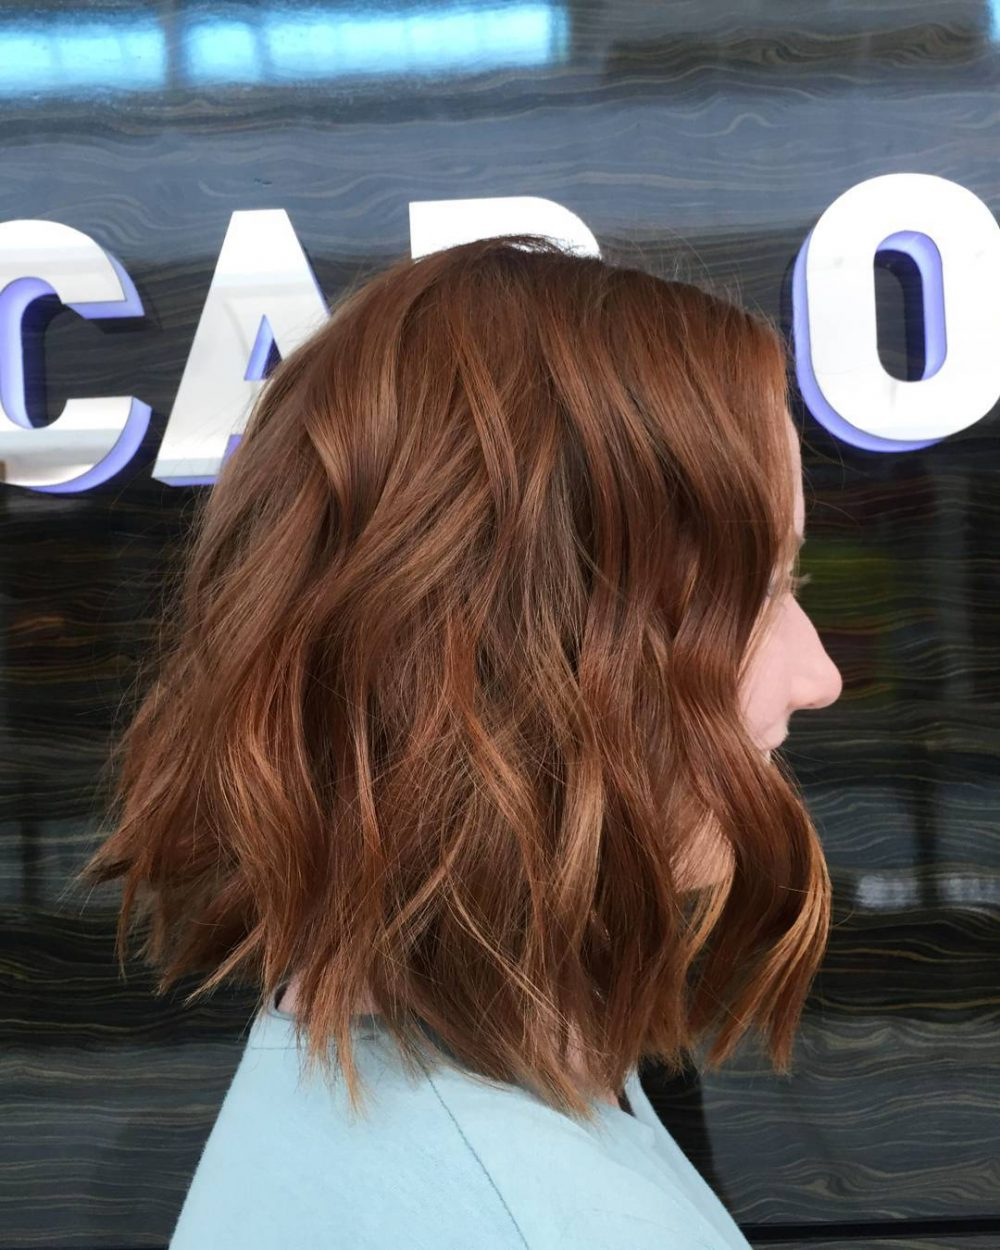 46 Wavy Bob Hairstyles You've Gotta See This Year